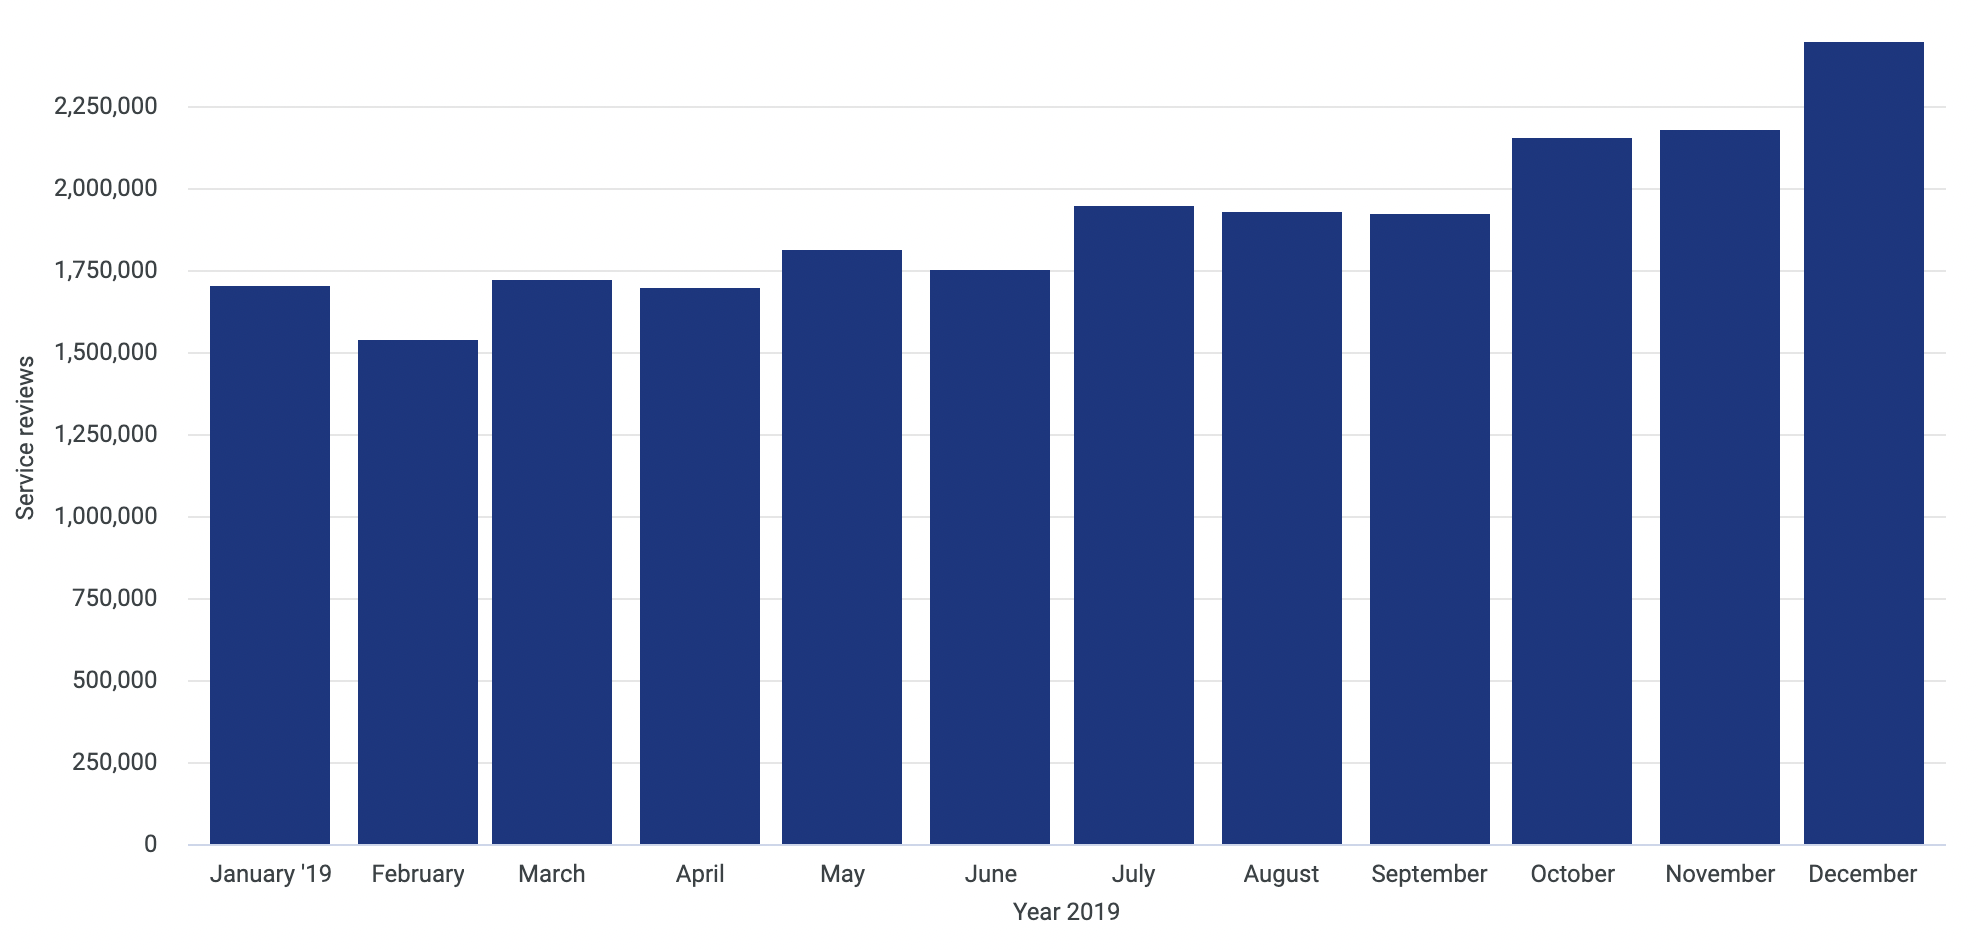 Service reviews left on Trustpilot.com between January 1st 2019 and December 31st 2019. Here, we can observe a significant increase in service reviews from October onwards.